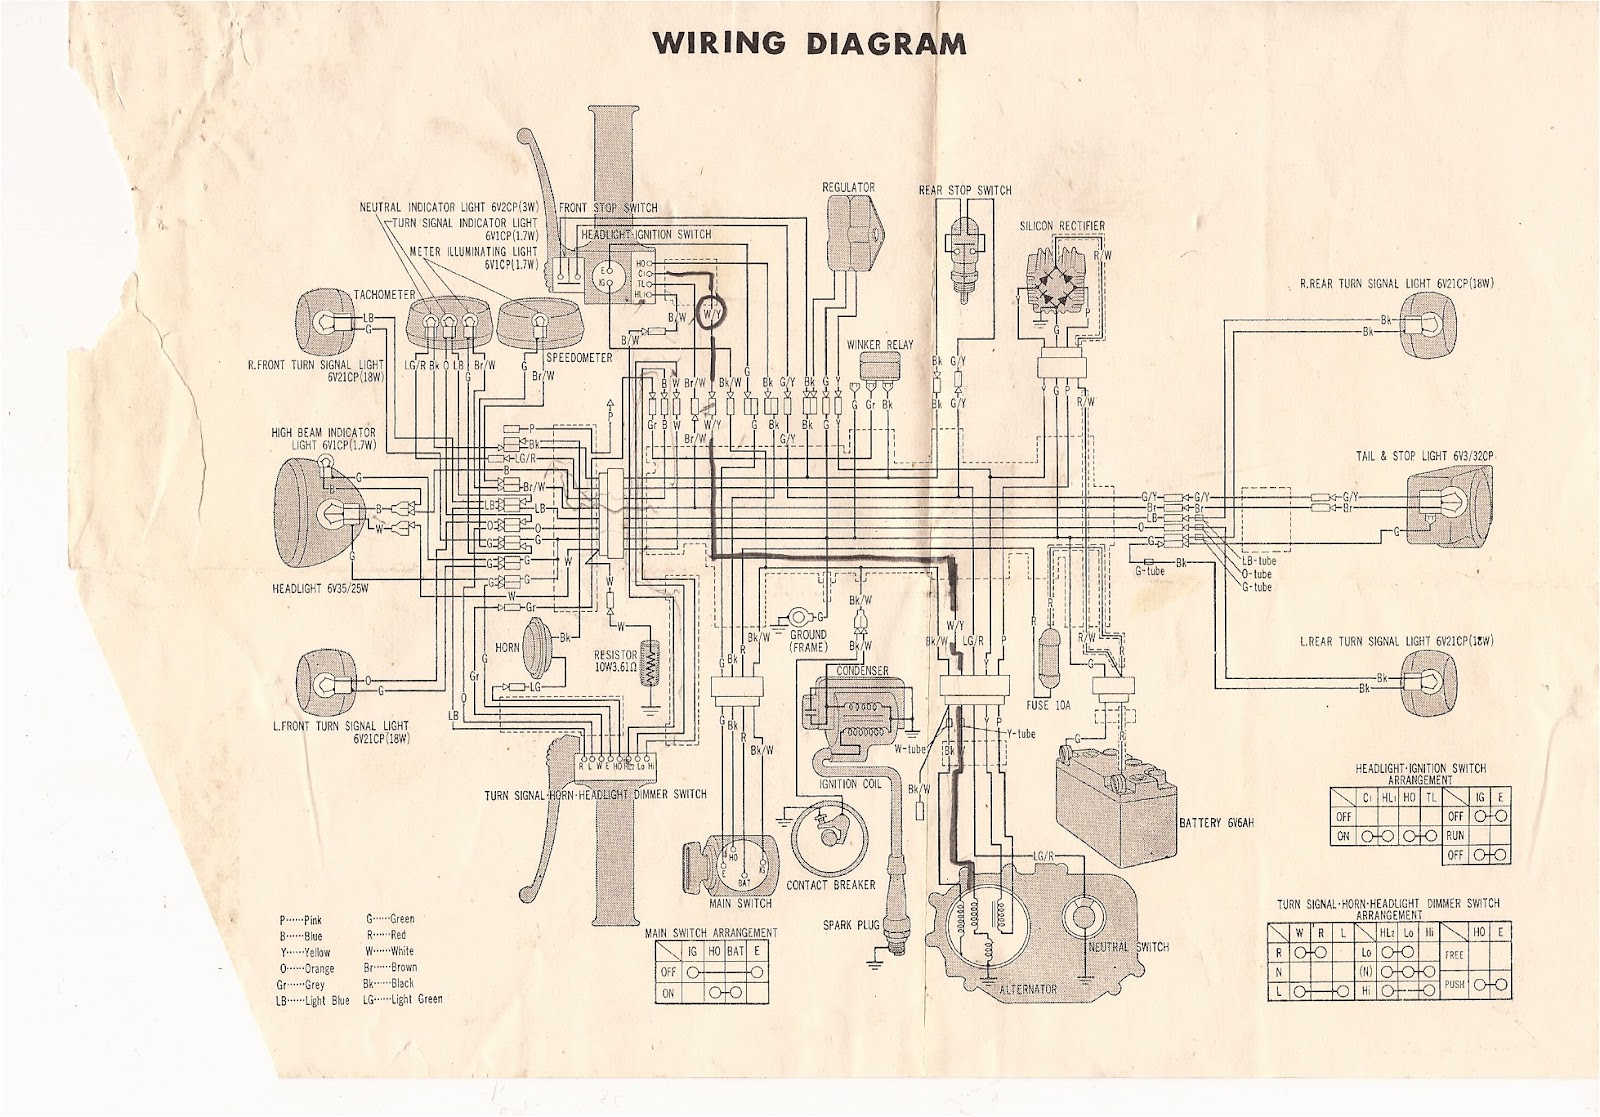 1993 Big Bear 350 Wiring Diagram 32 Images 88 Moto 4 R4l May 2012 Xl350 Old Yamaha At